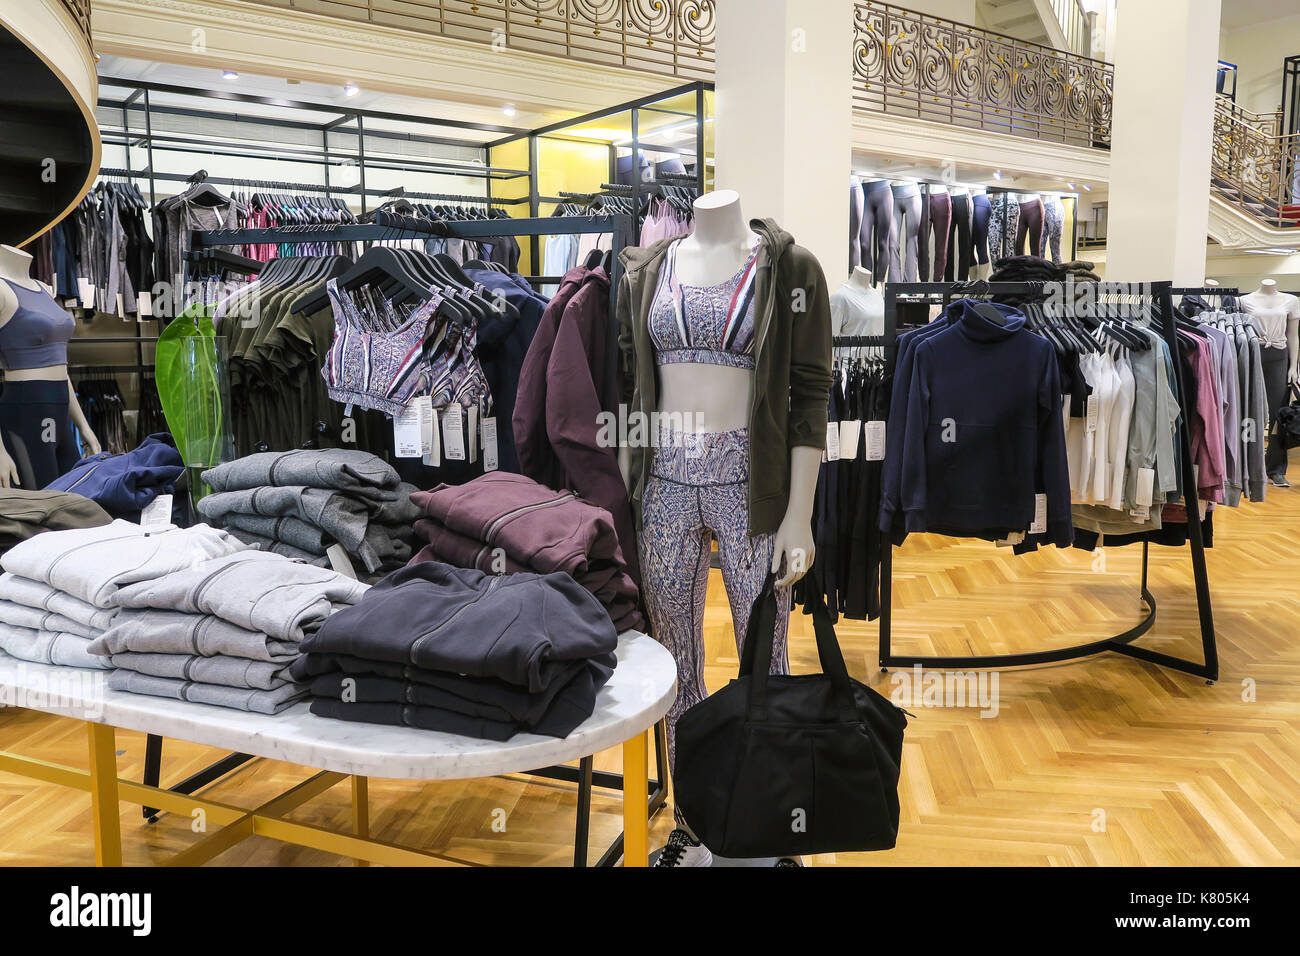 9d1ab8a7f0 Lululemon And Store Stock Photos & Lululemon And Store Stock Images ...